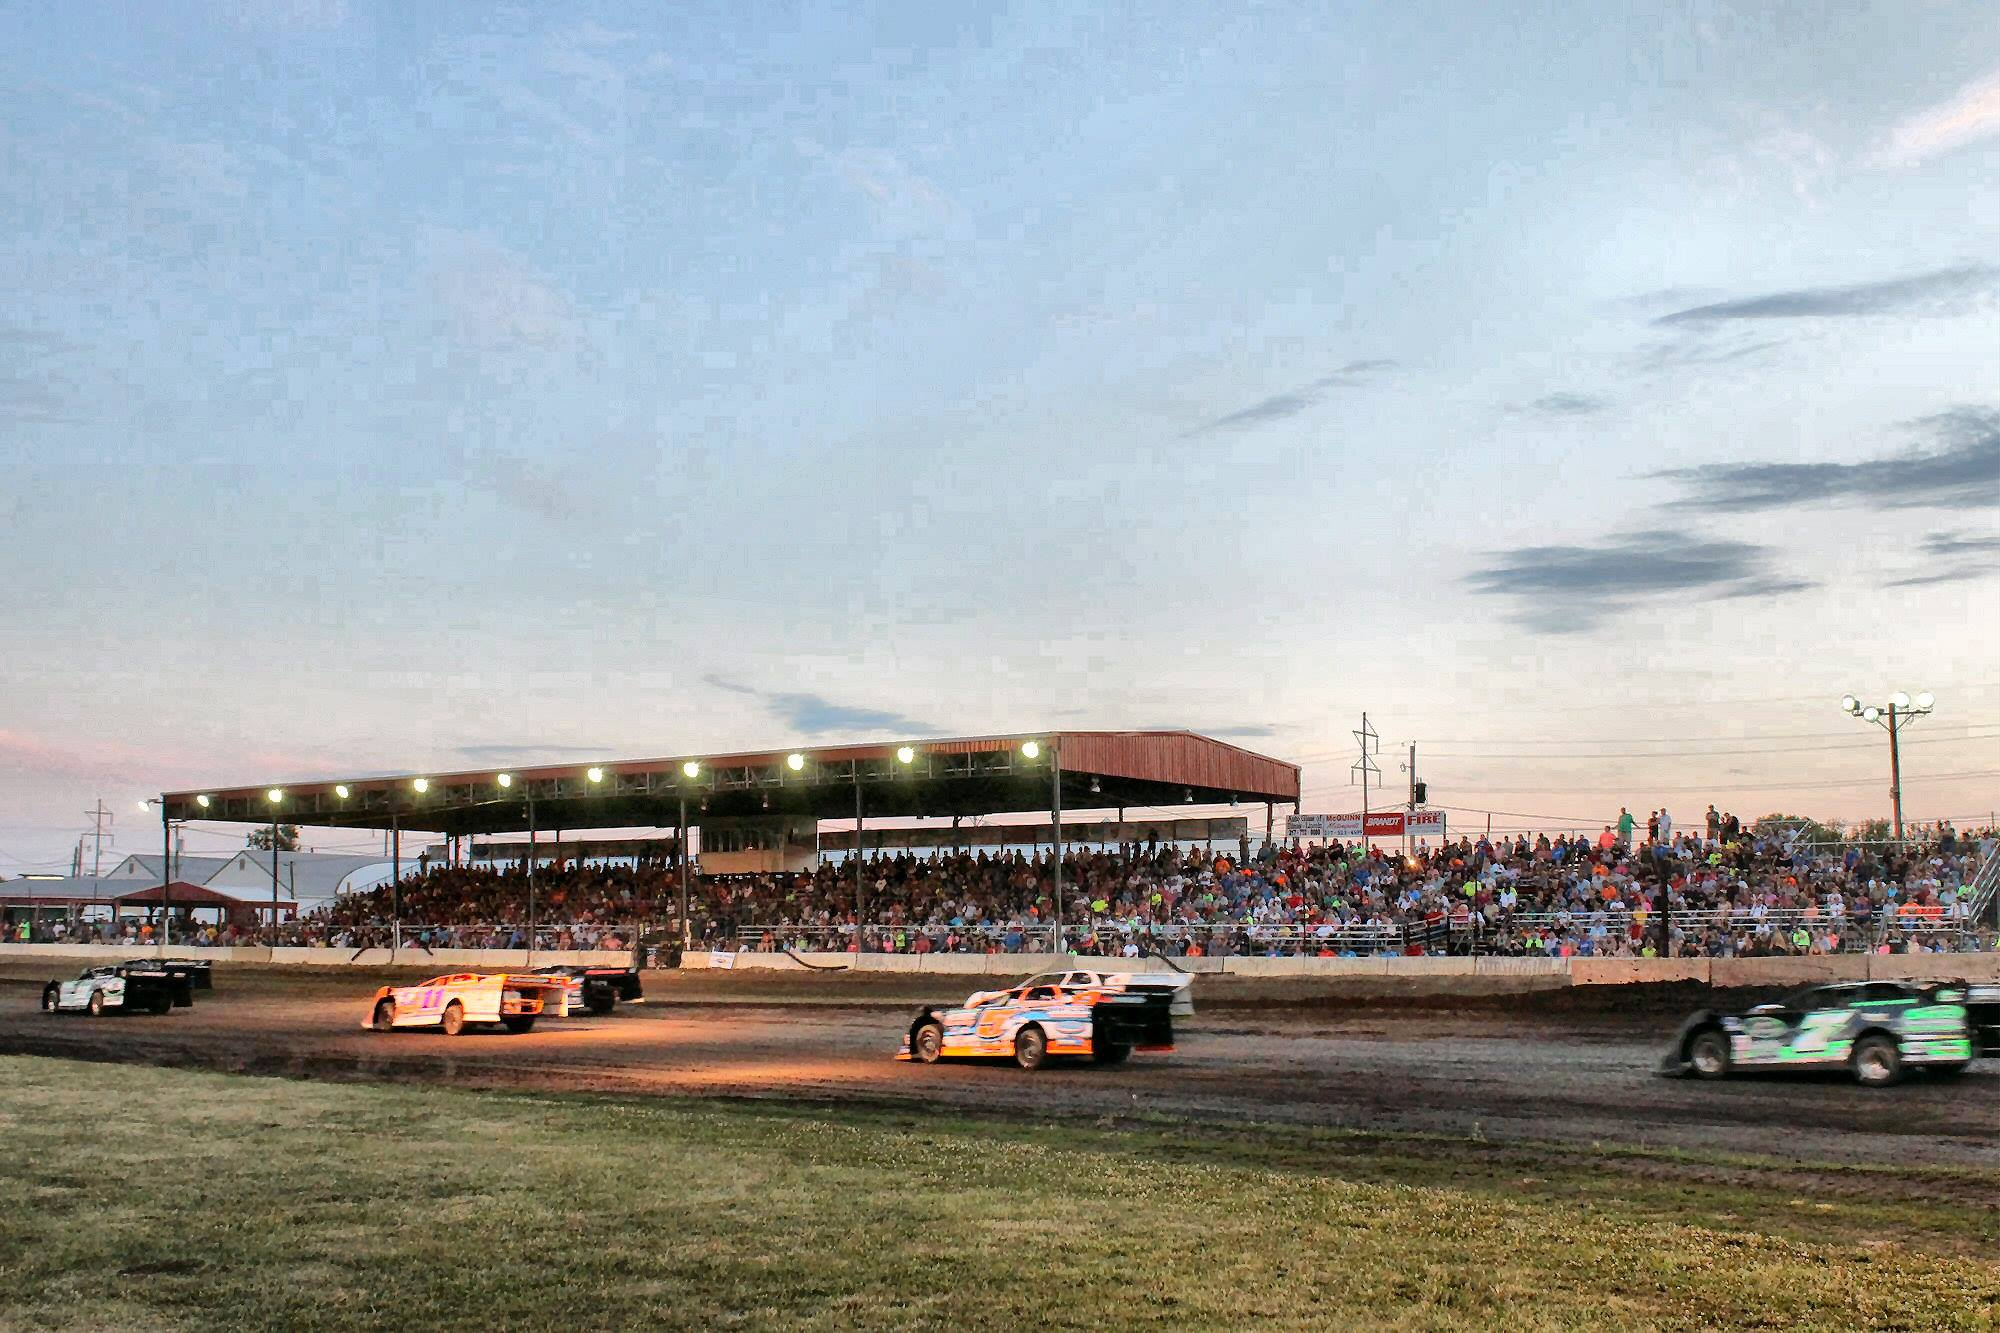 Perfect Graue Chevrolet Showdown Brought A Record Crowd In 2017 (Lincoln, IL) For  The Second Year In A Row, Lincoln Speedway, In Lincoln, IL Will Be The Site  Of A ...